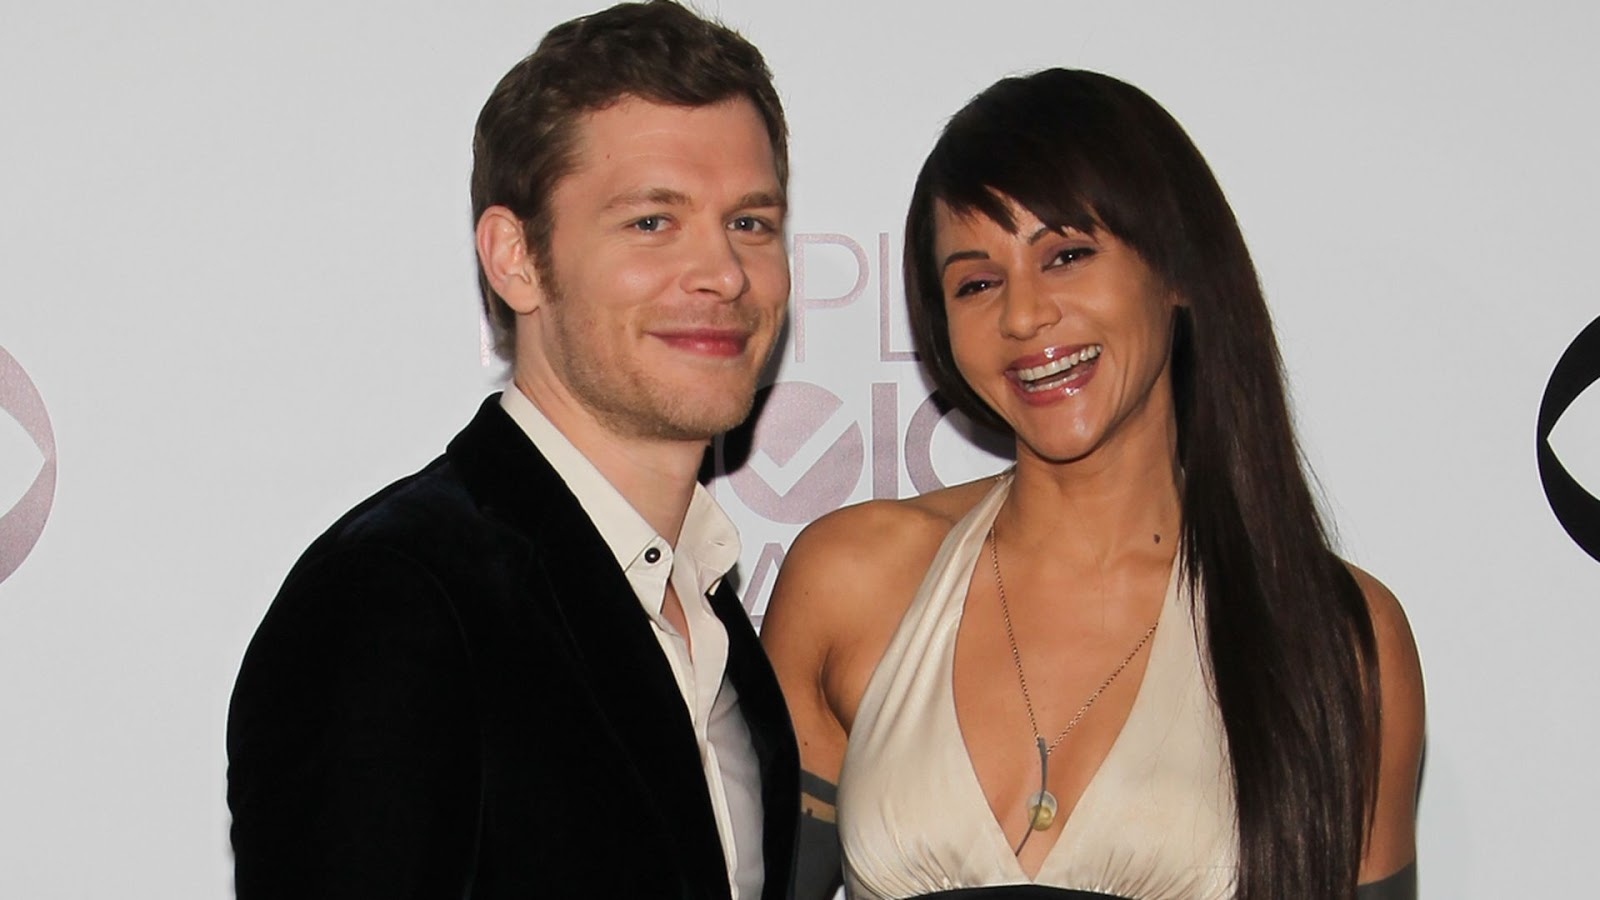 Joseph Morgan protagonista de The Originals con su mujer